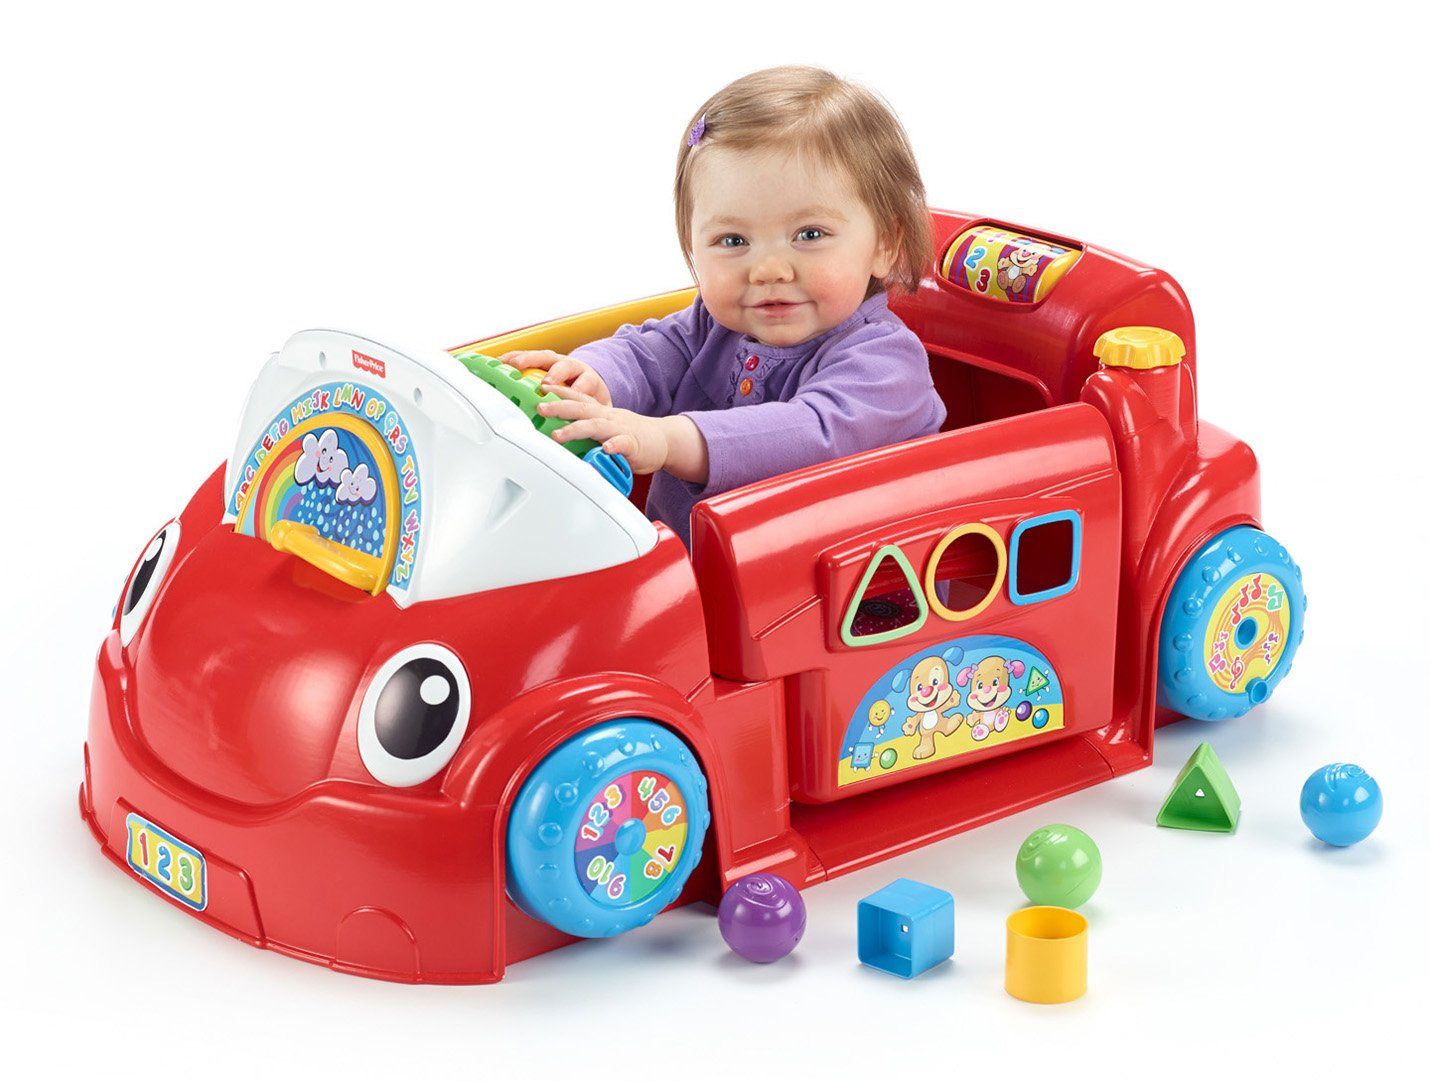 Luxury  Gift Ideas for Babies and Toddlers orsoshesays giftguide